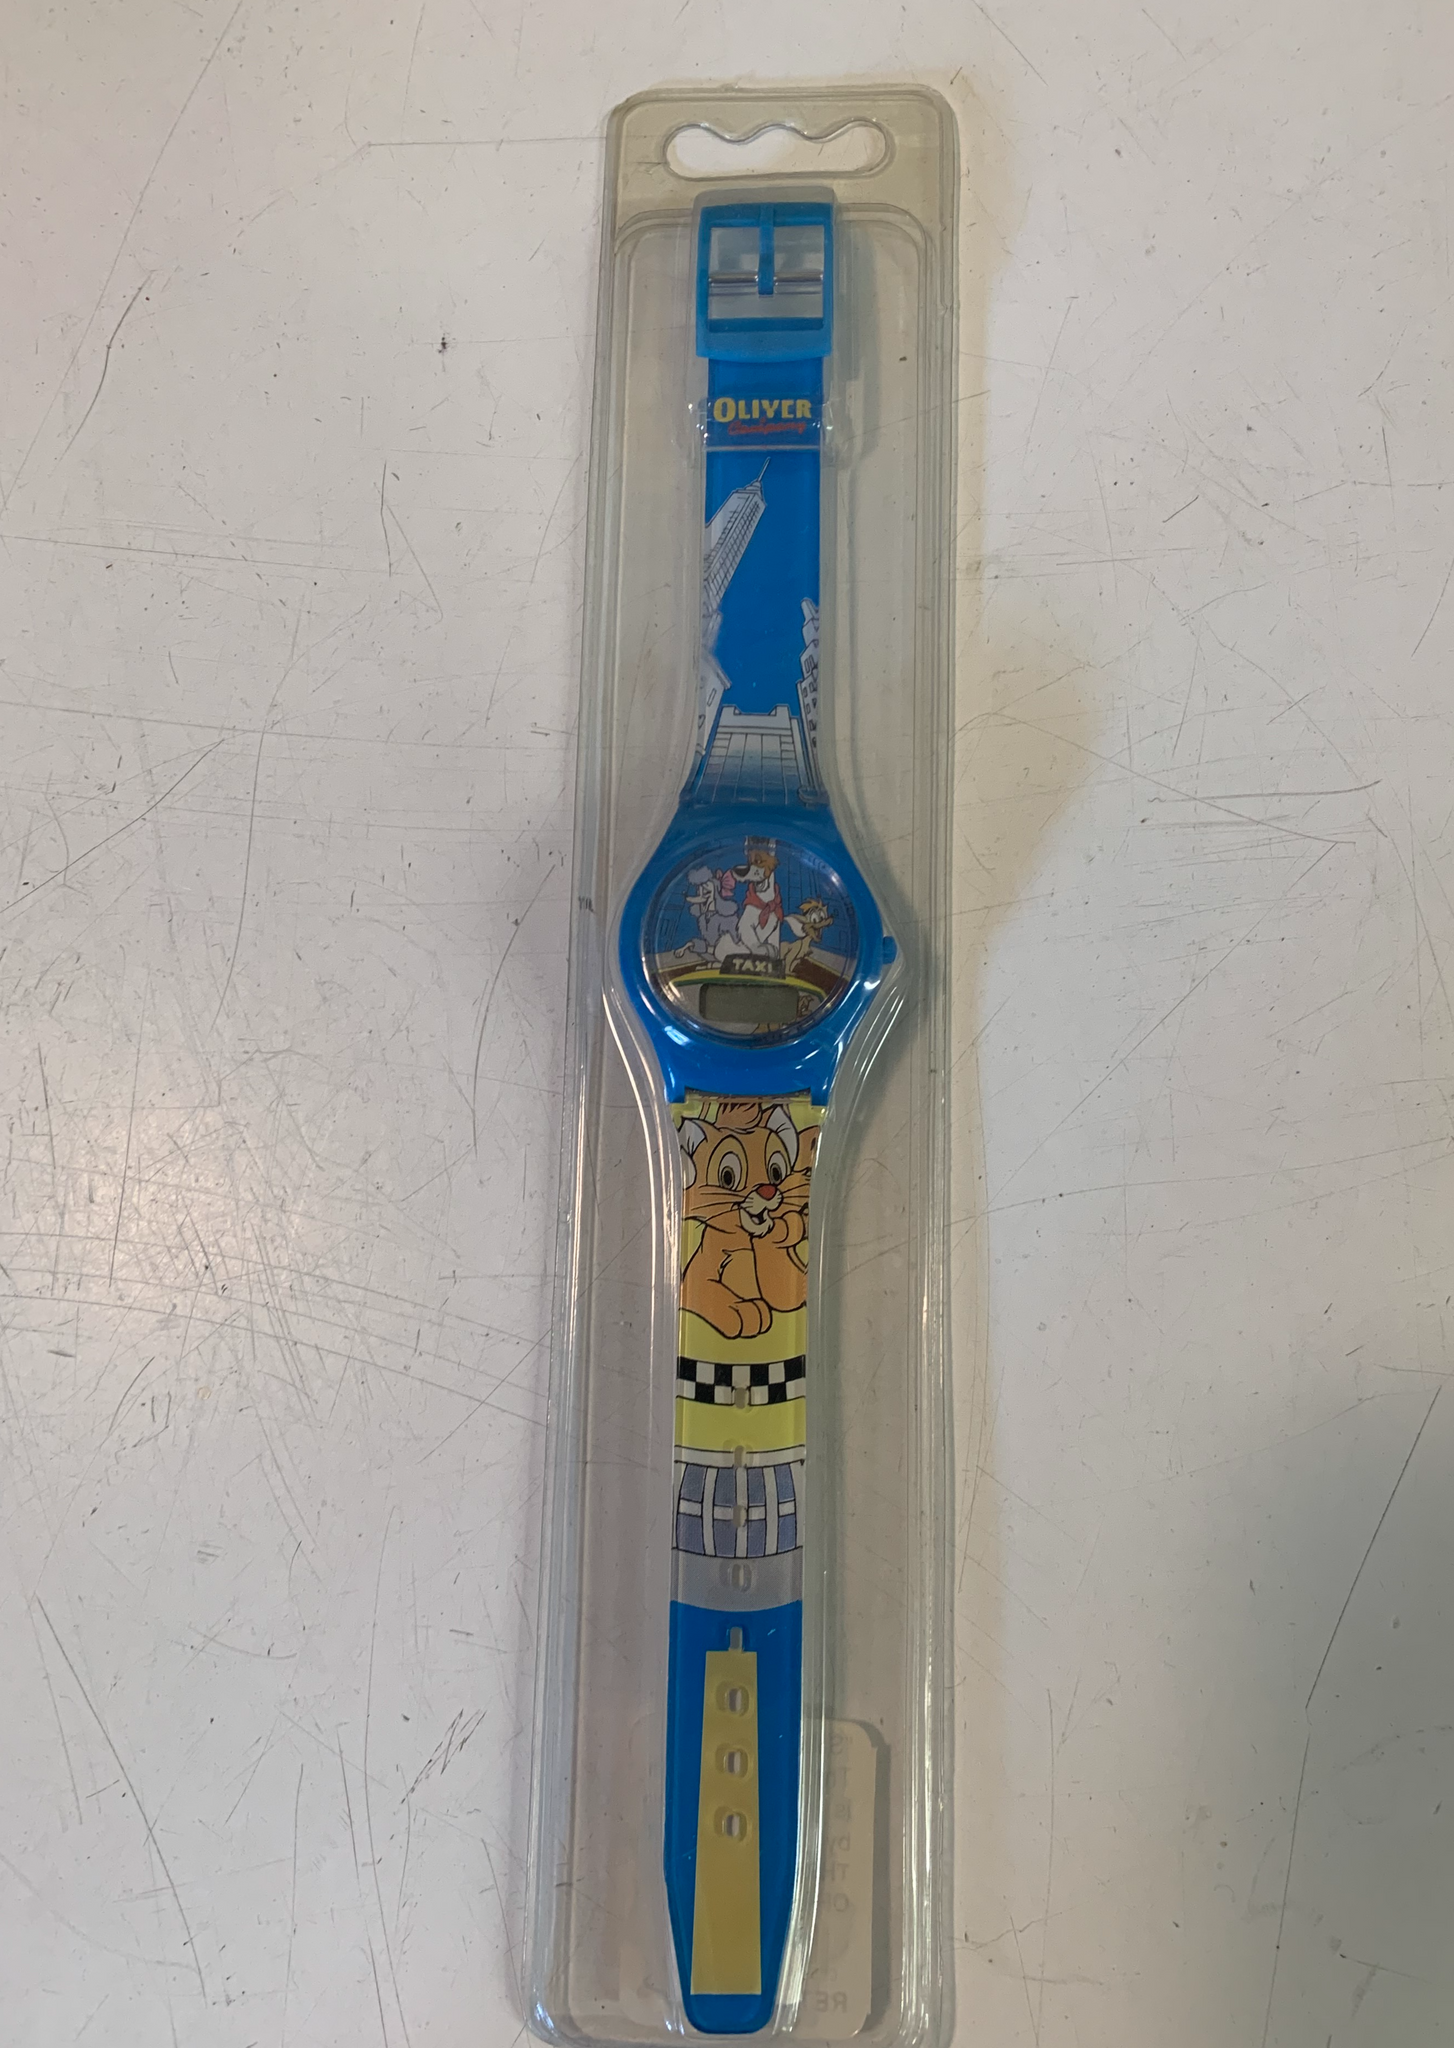 Vintage Walt Disney's Oliver & Company Taxi Digital Watch NOS Sealed